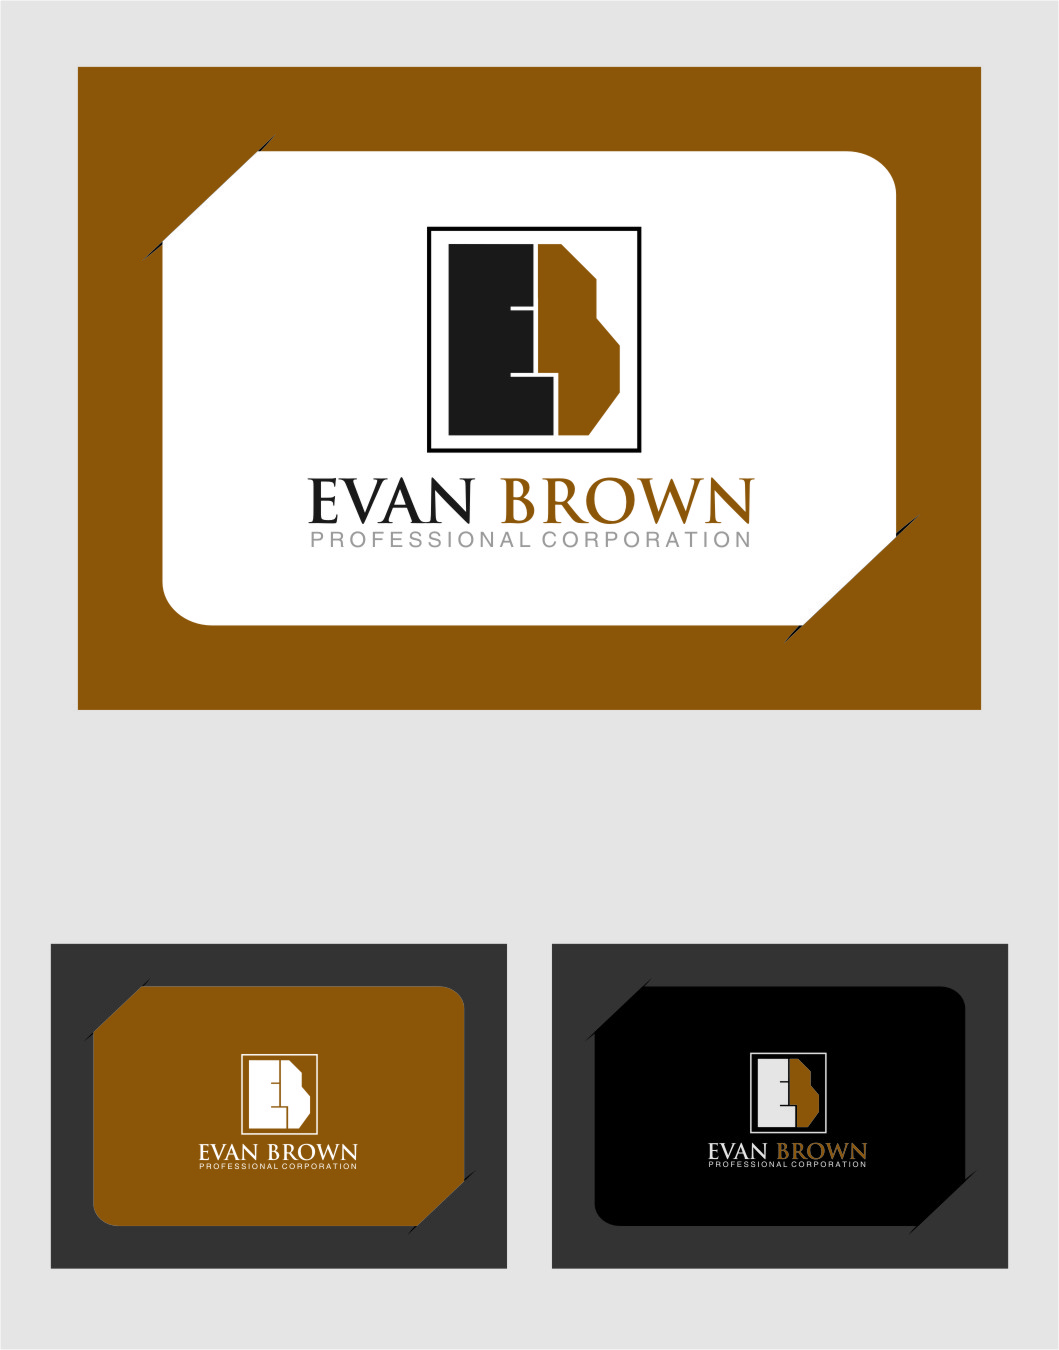 Logo Design by Ngepet_art - Entry No. 167 in the Logo Design Contest Inspiring Logo Design for Evan Brown Professional Corporation.